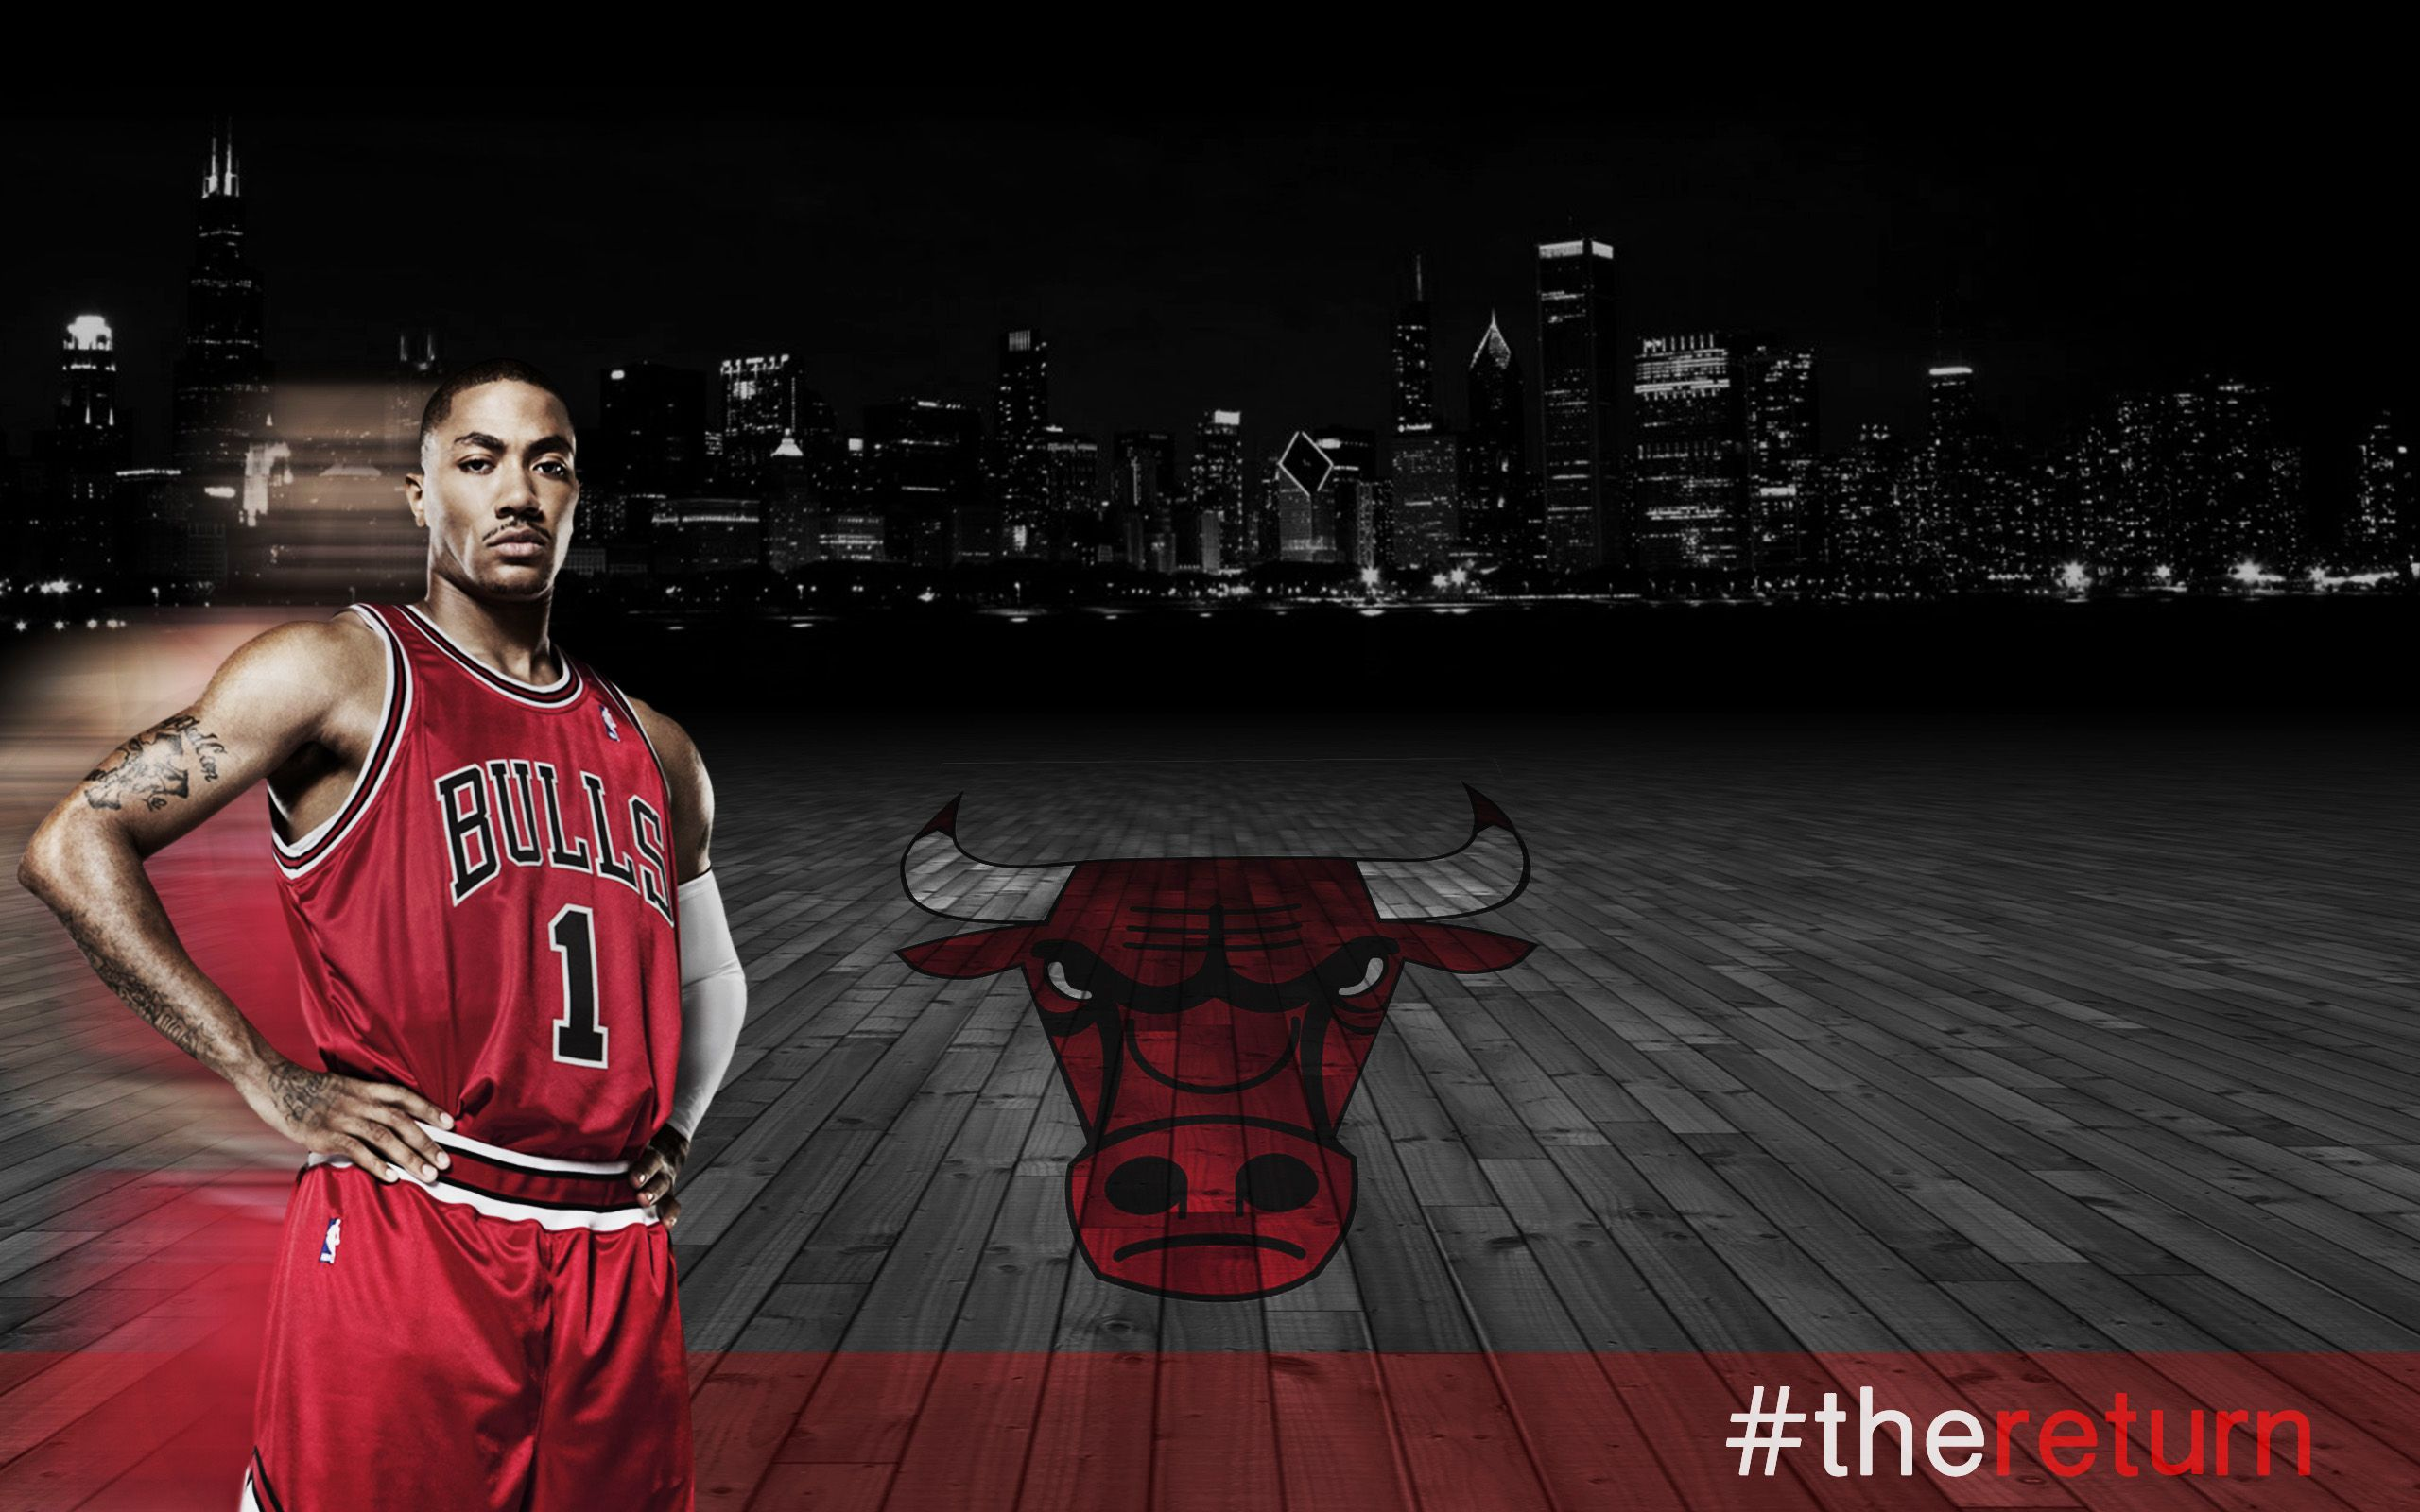 f5e055e0e255 Derrick Rose Wallpaper